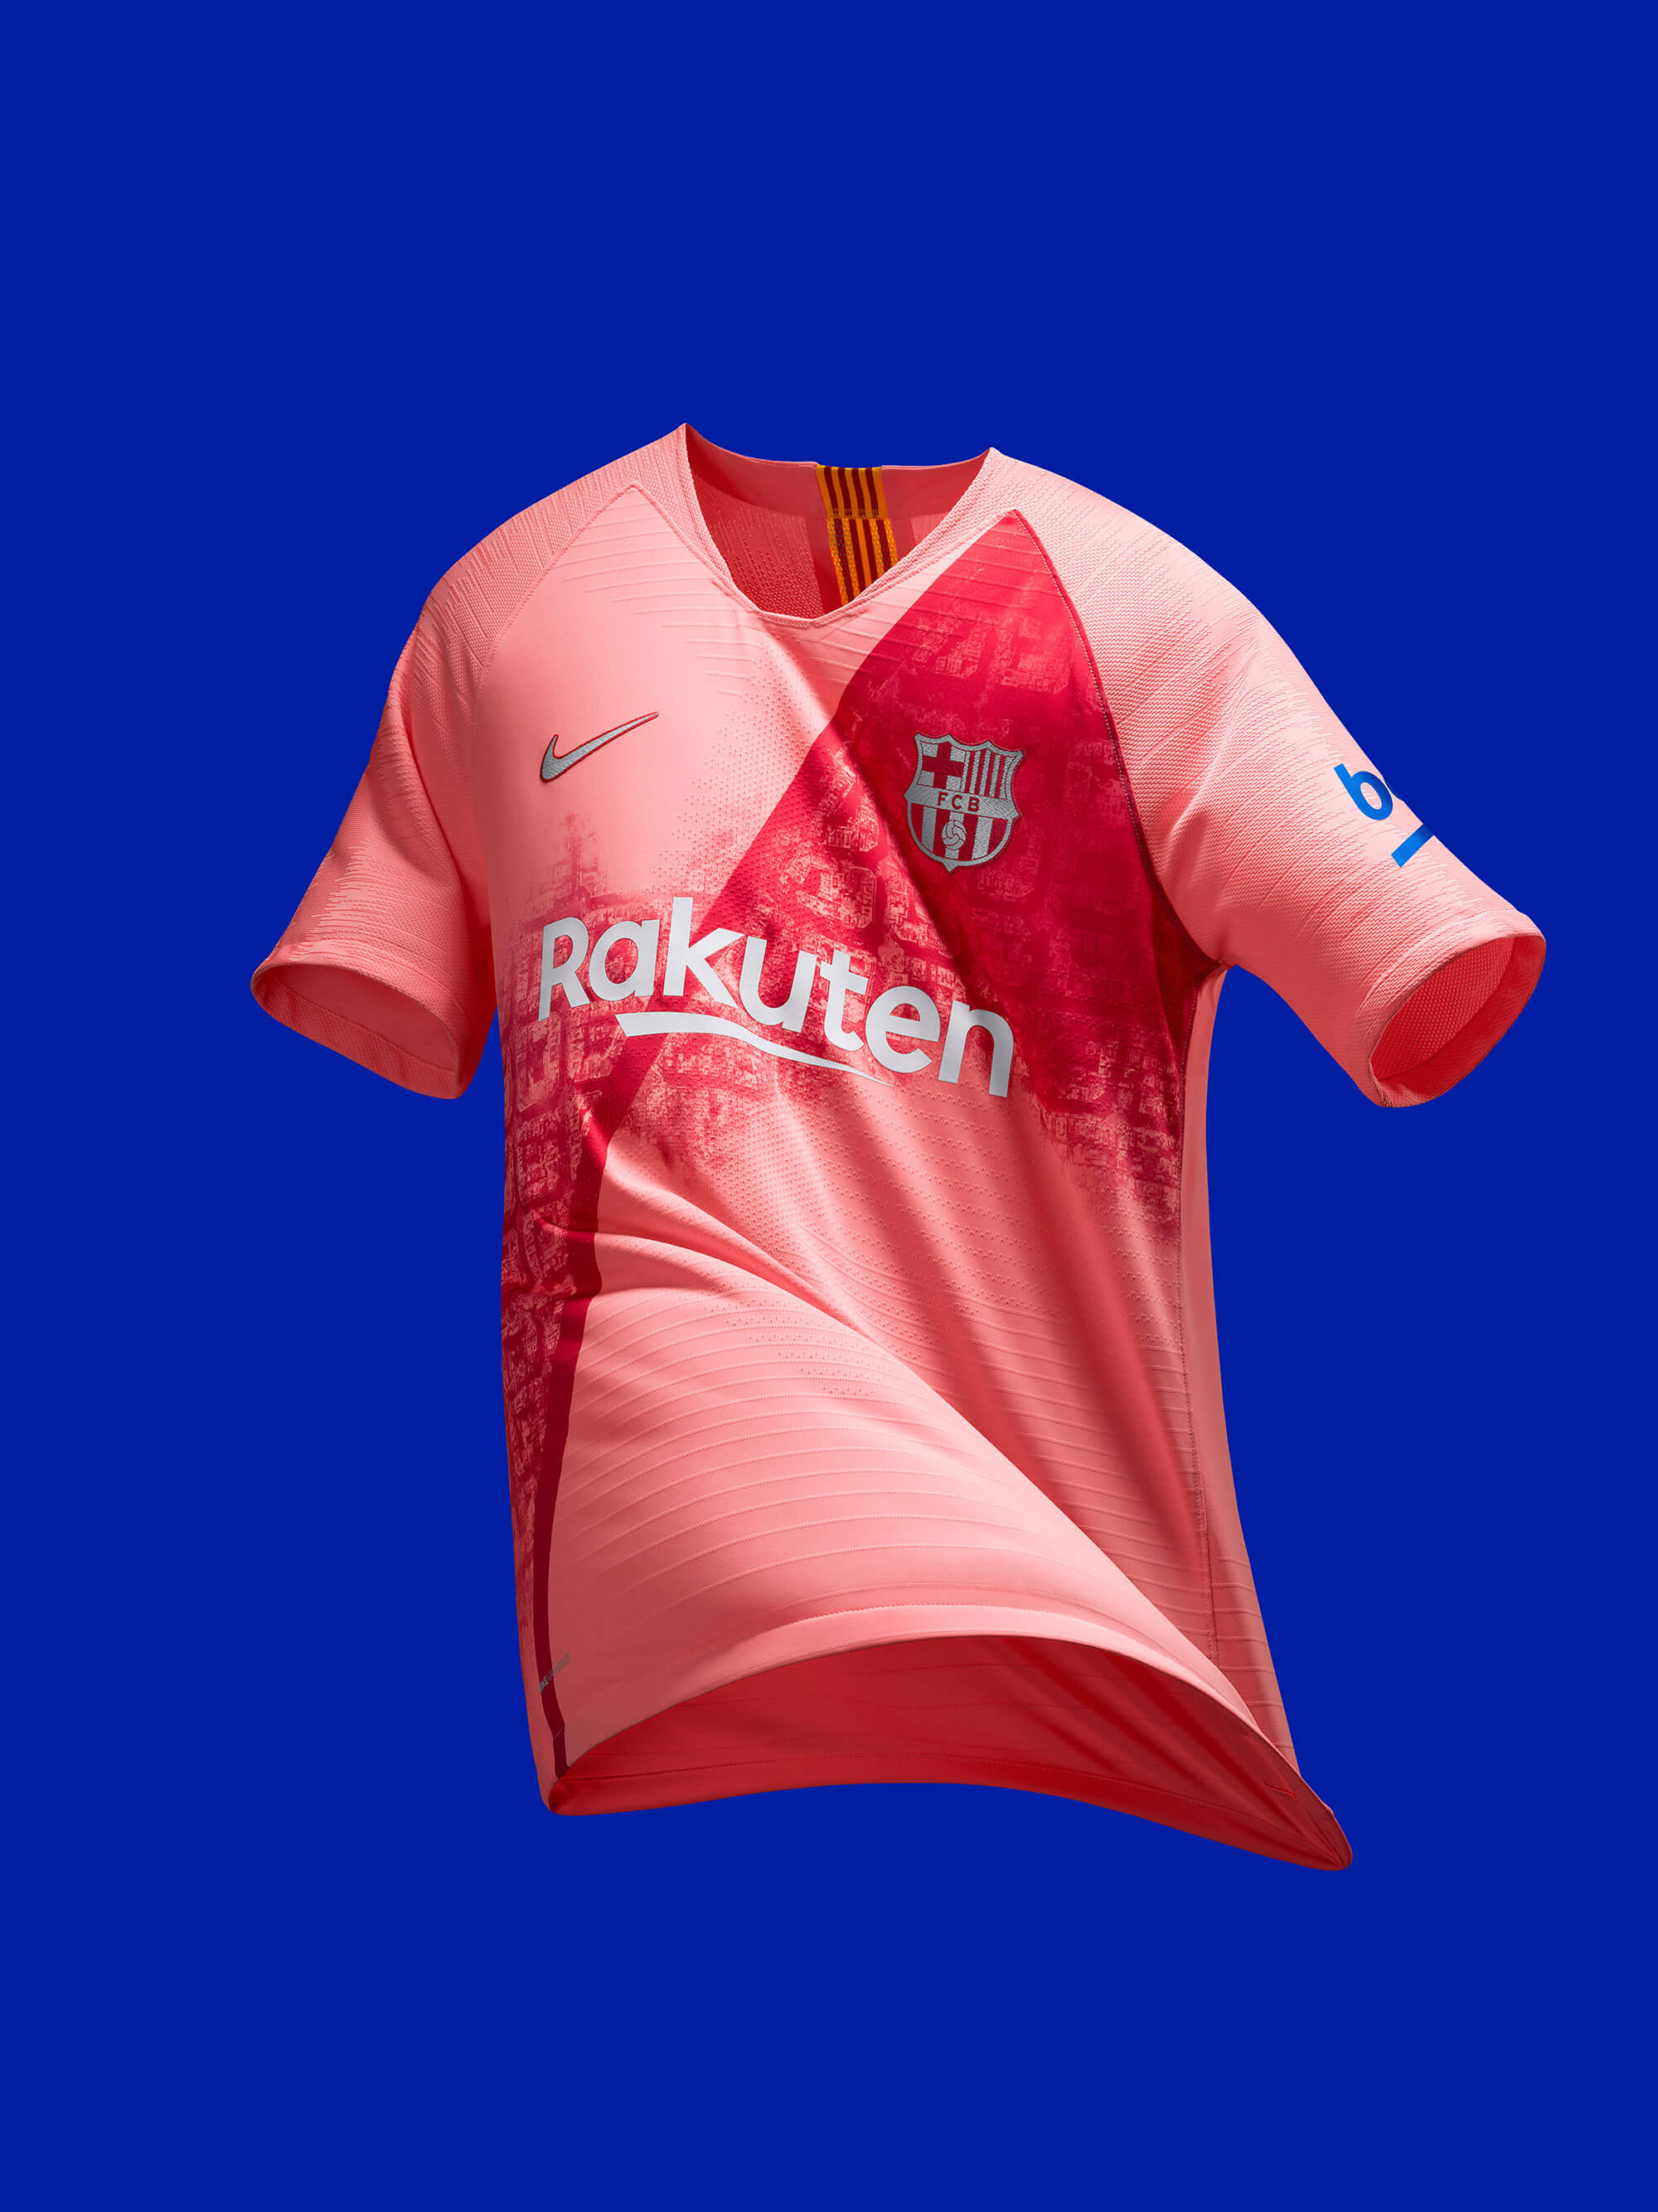 af632826d ... Click to enlarge image barcelona 18 19 nike third kit l.jpg